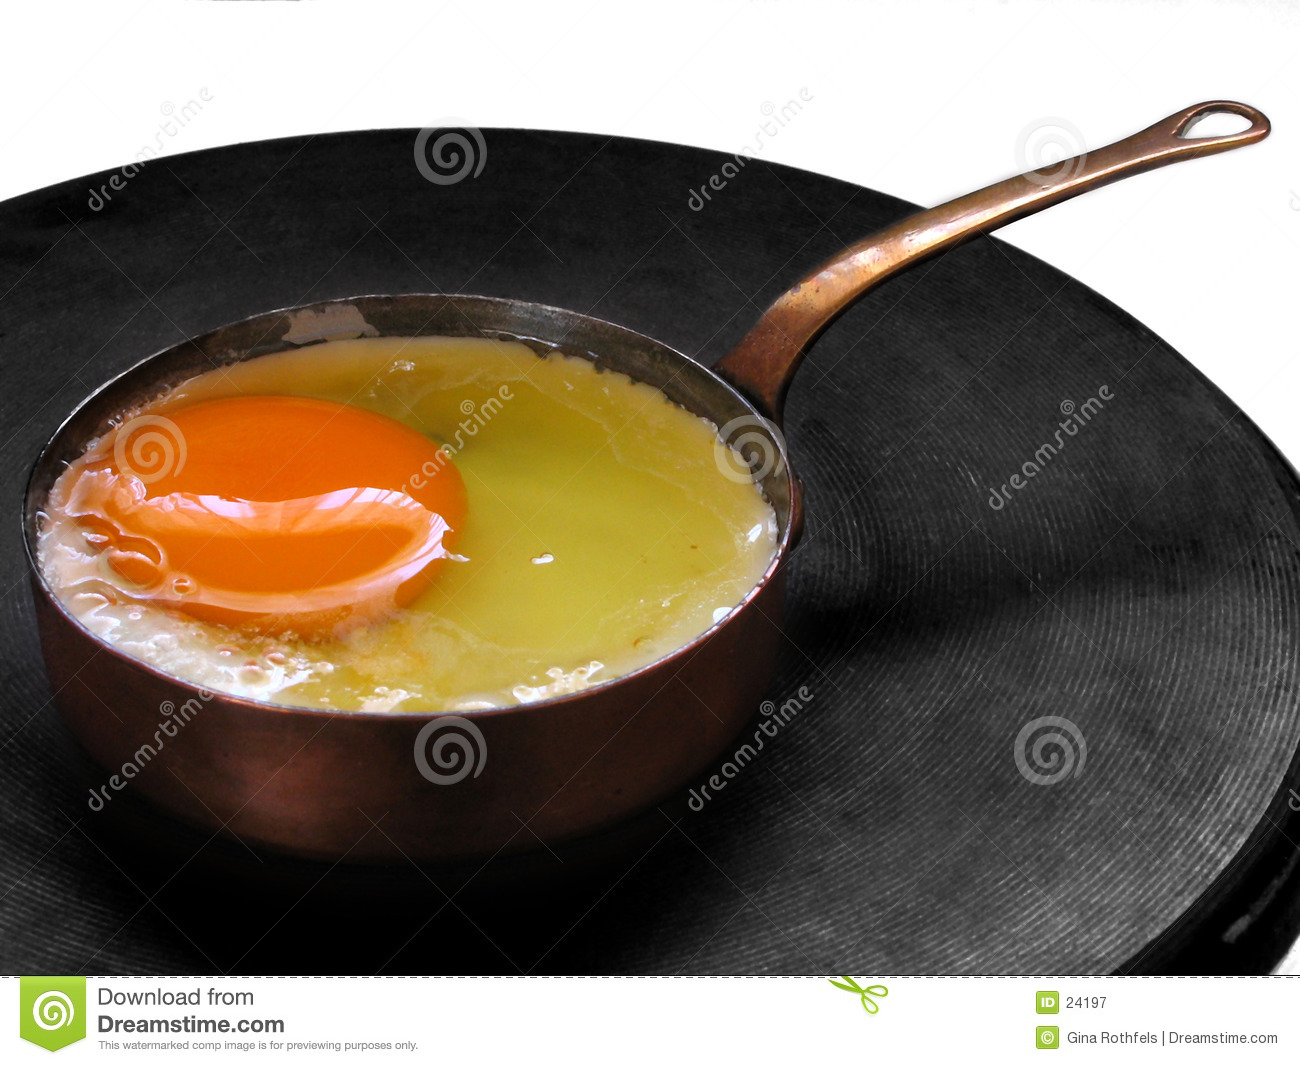 Frying an egg (in a miniature pan)